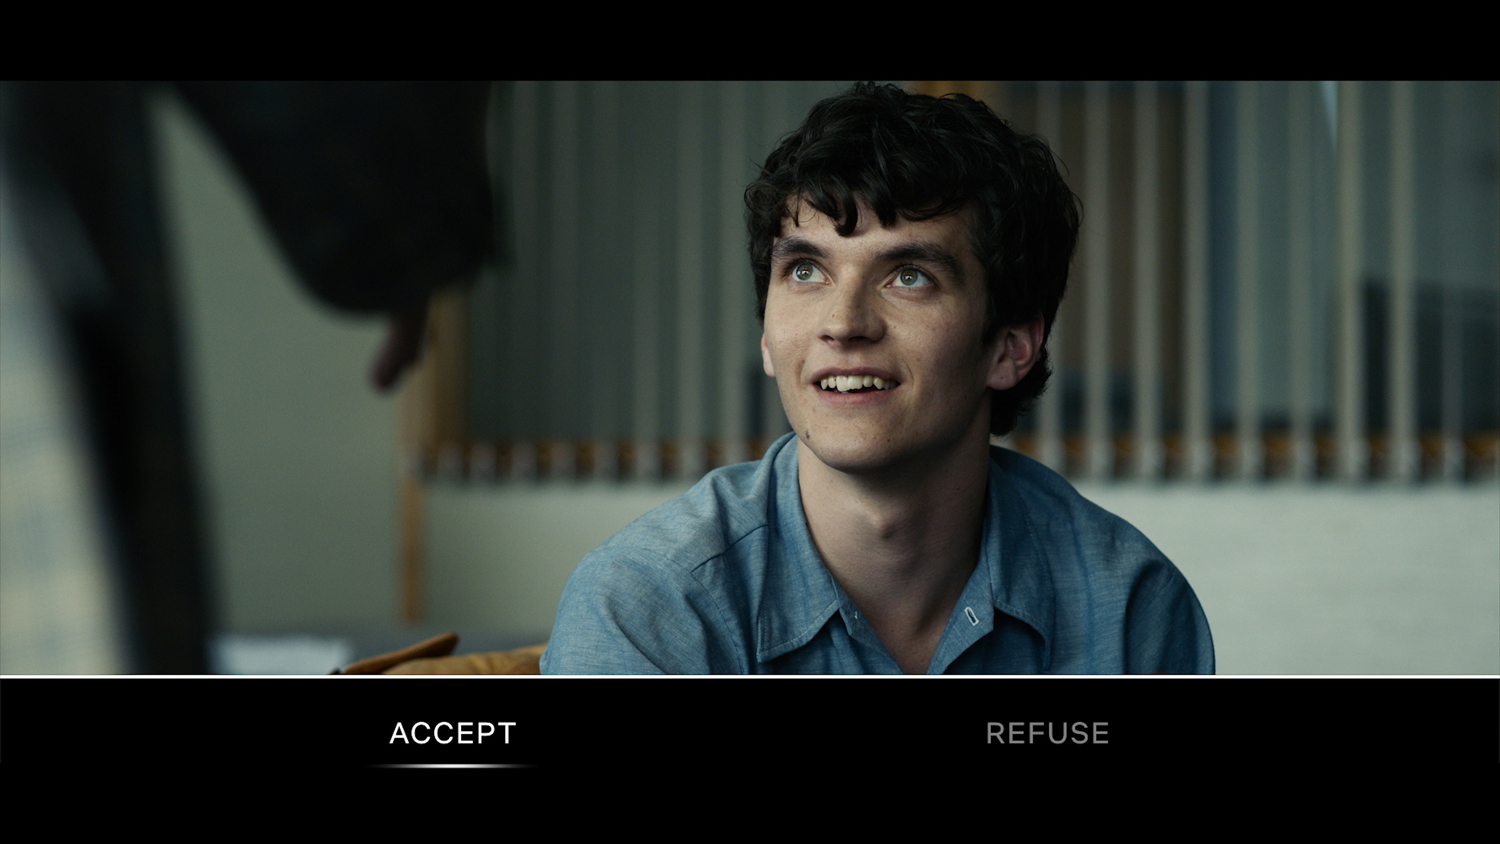 Black-Mirror-Bandersnatch-Choices-Guide.jpg